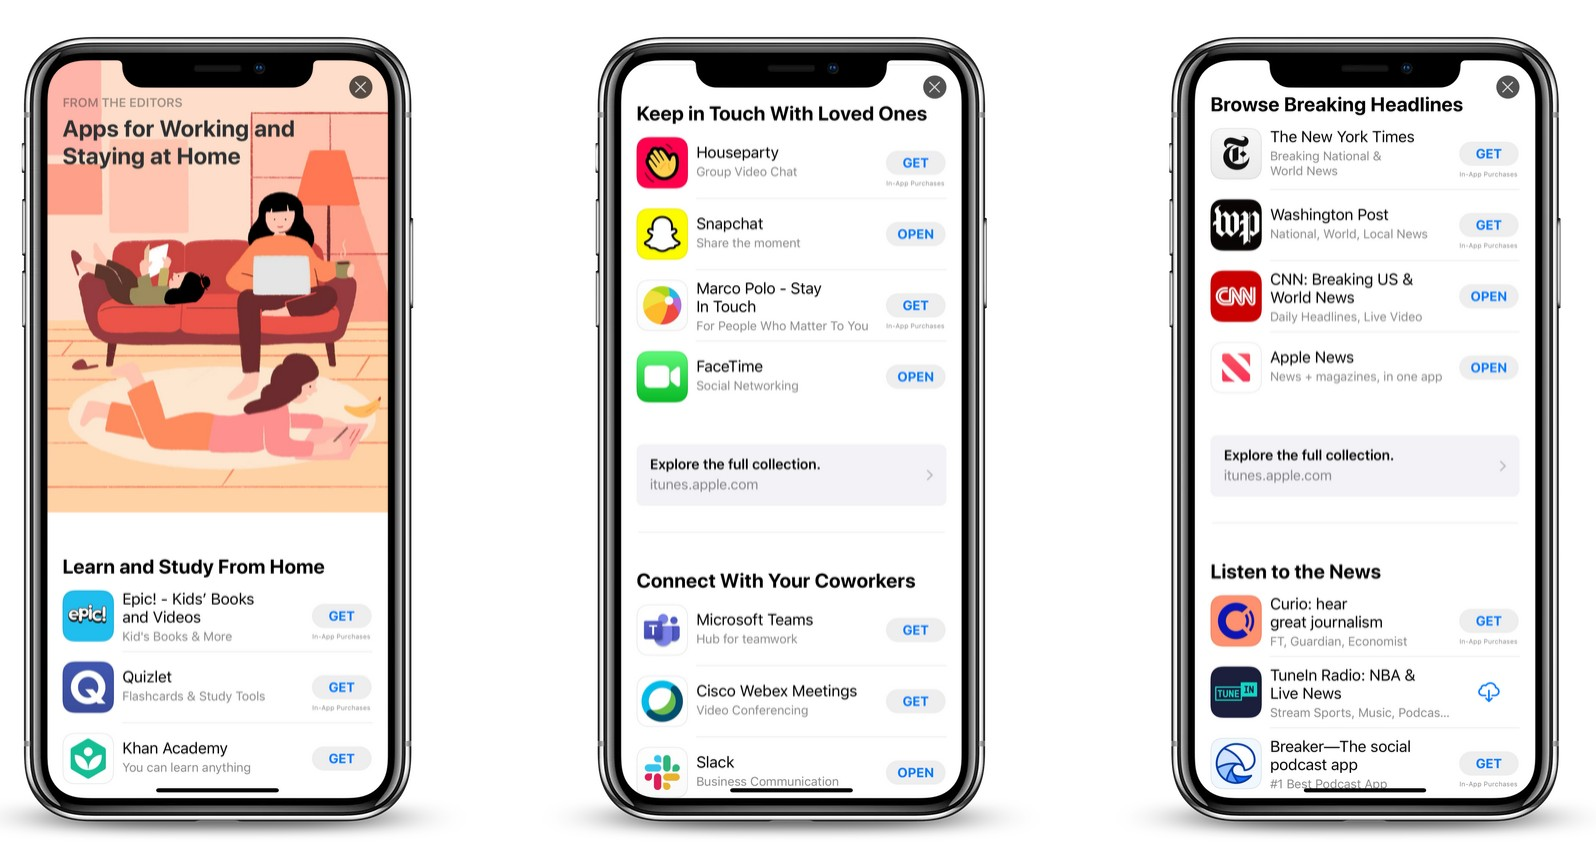 New App Store Editorial Story Highlights Work From Home Apps